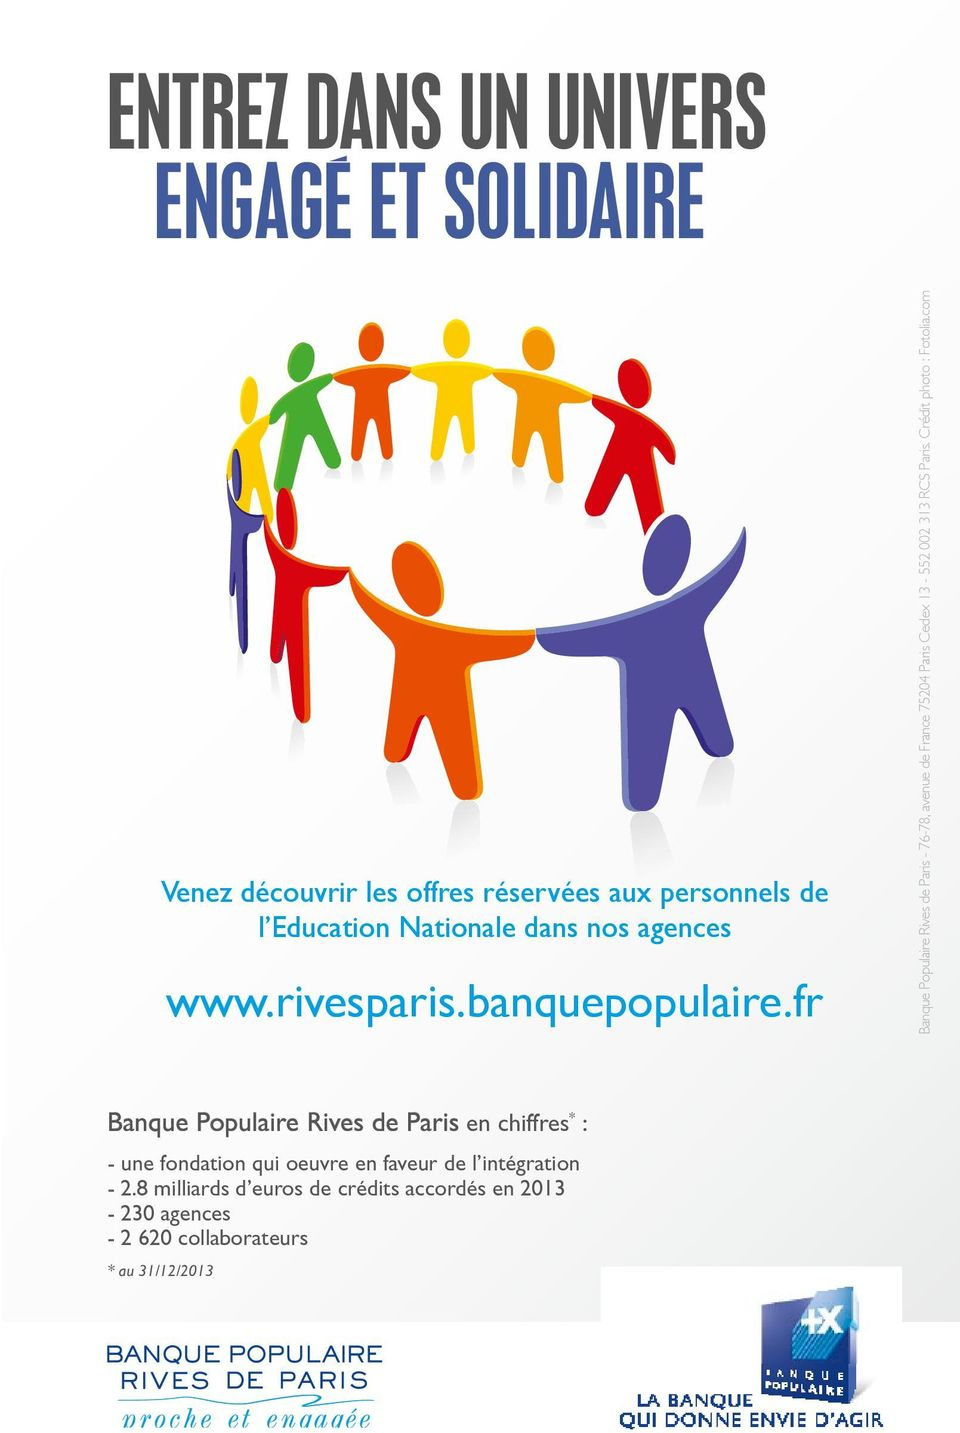 fr Banque Populaire Rives de Paris - 76-78, avenue de France 75204 Paris Cedex 13-552 002 313 RCS Paris.